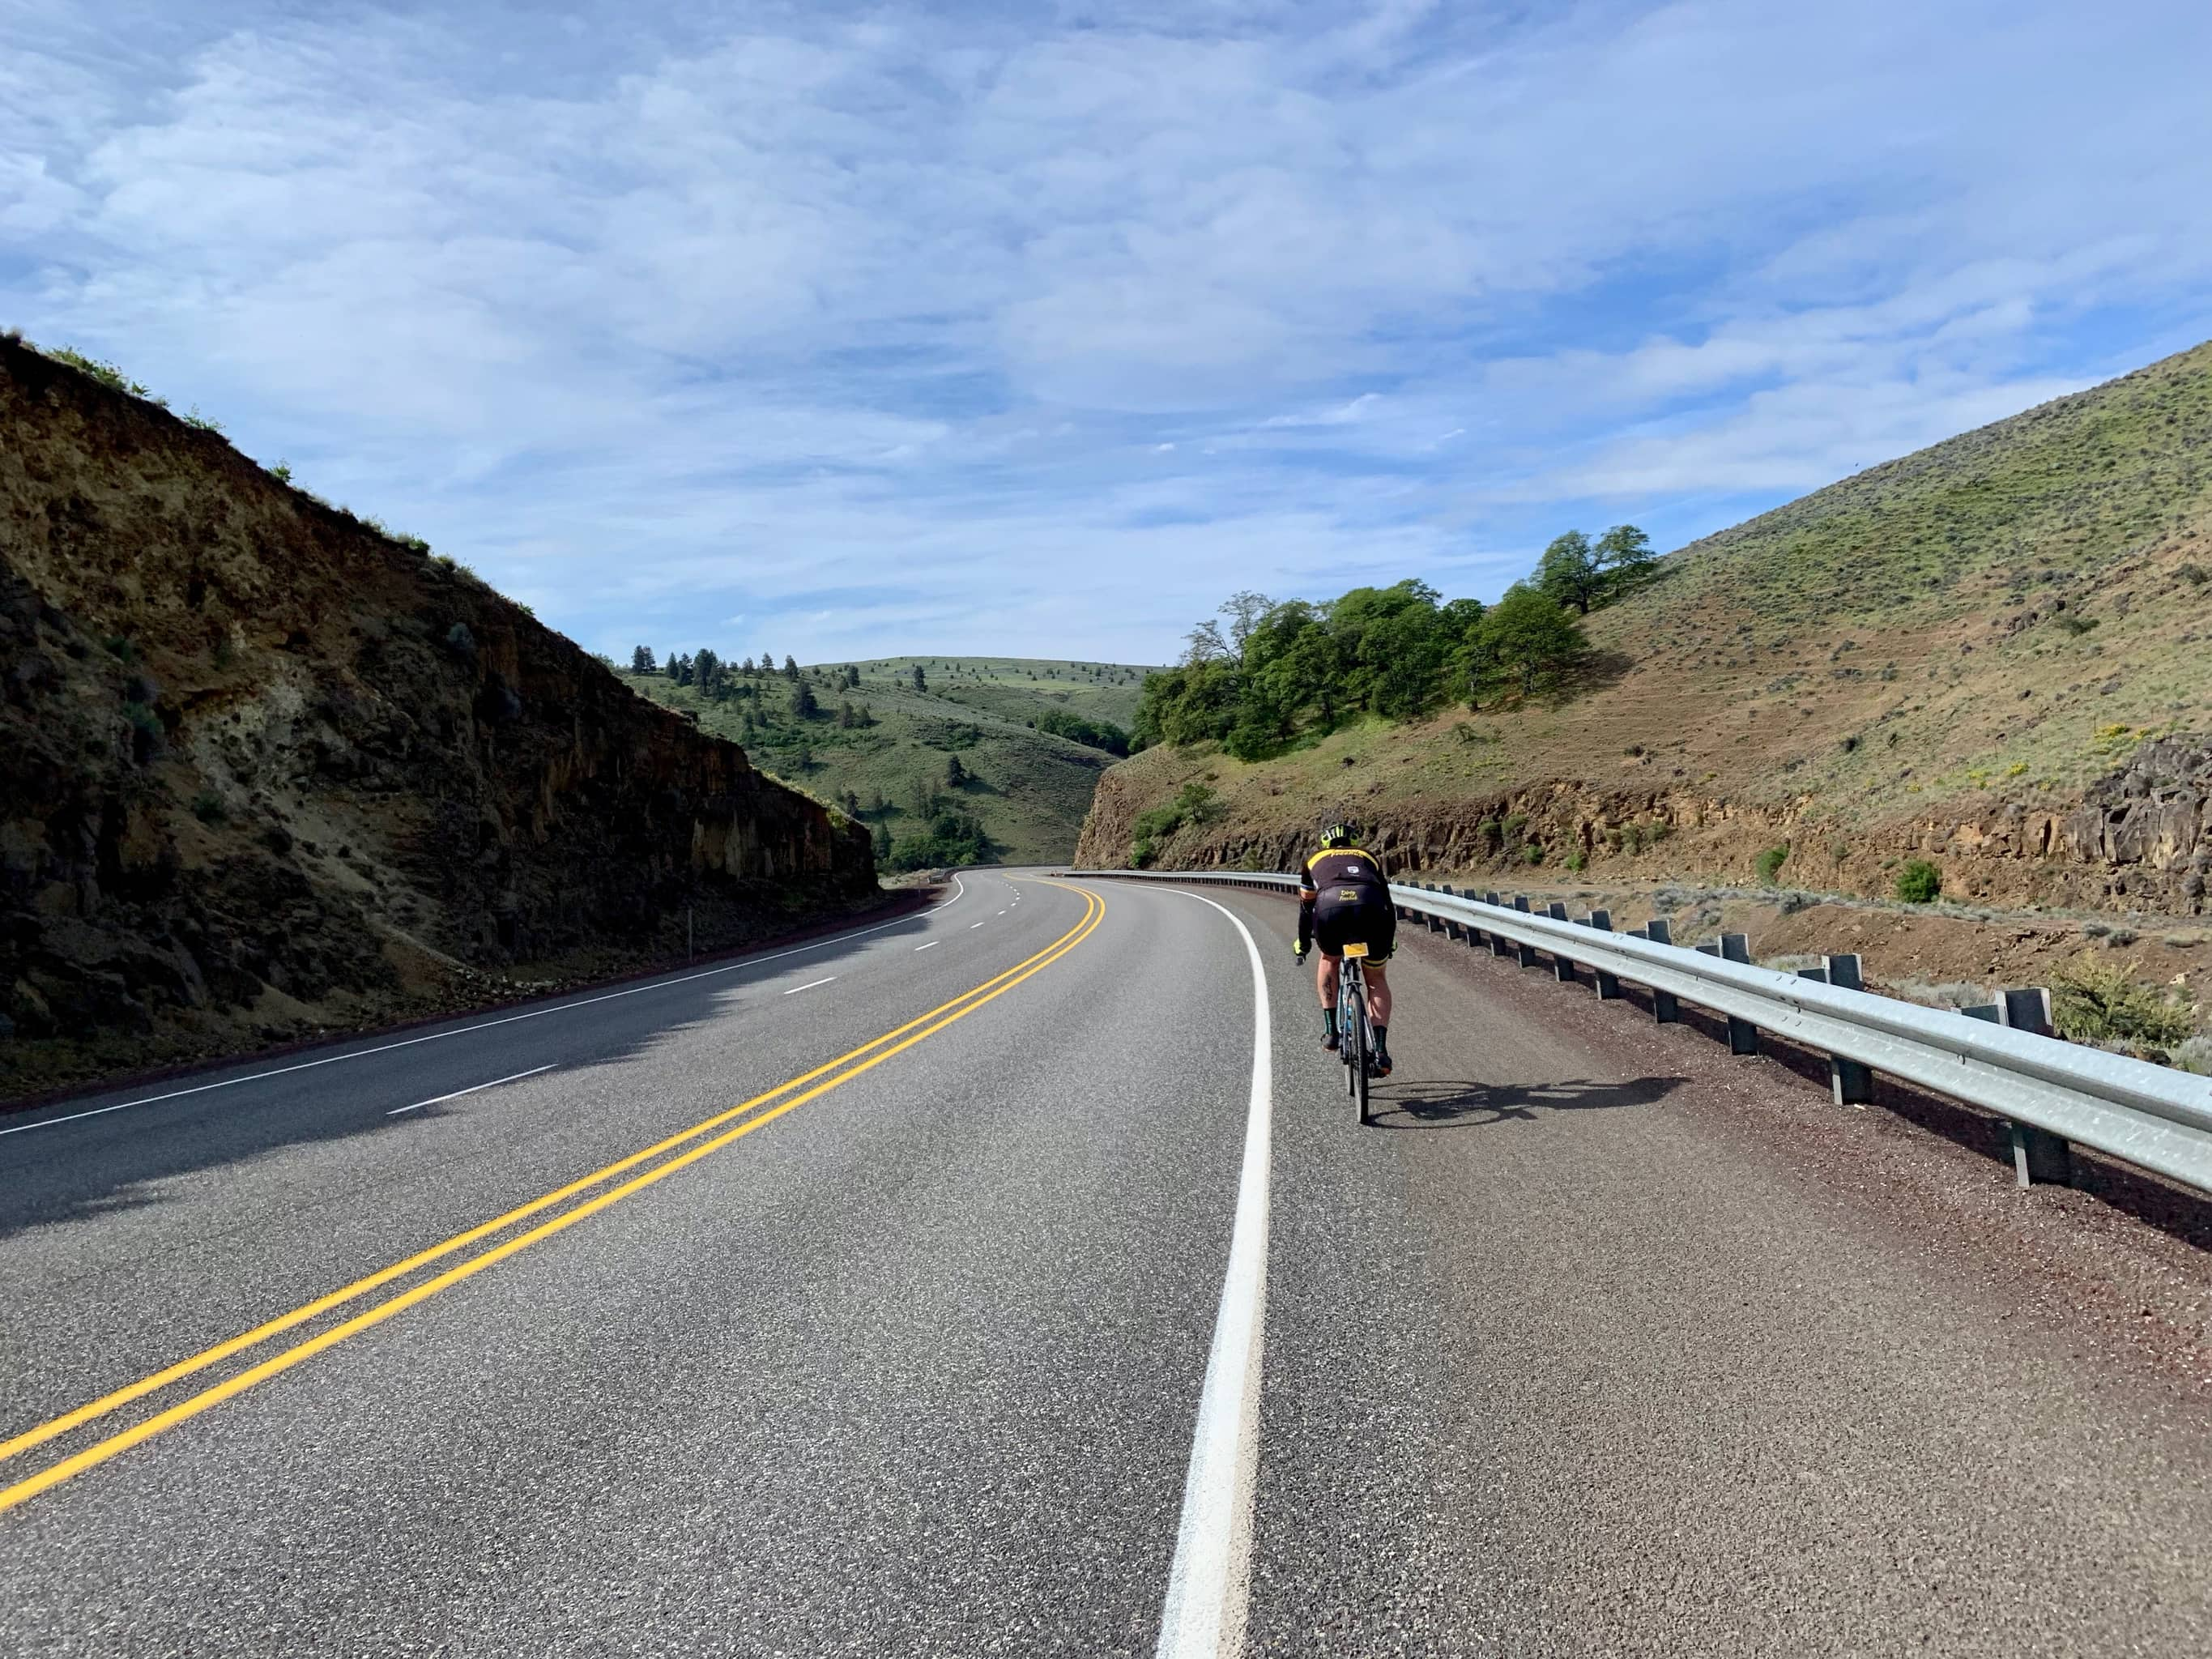 Cyclist dropping into Tygh Valley on highway 197.